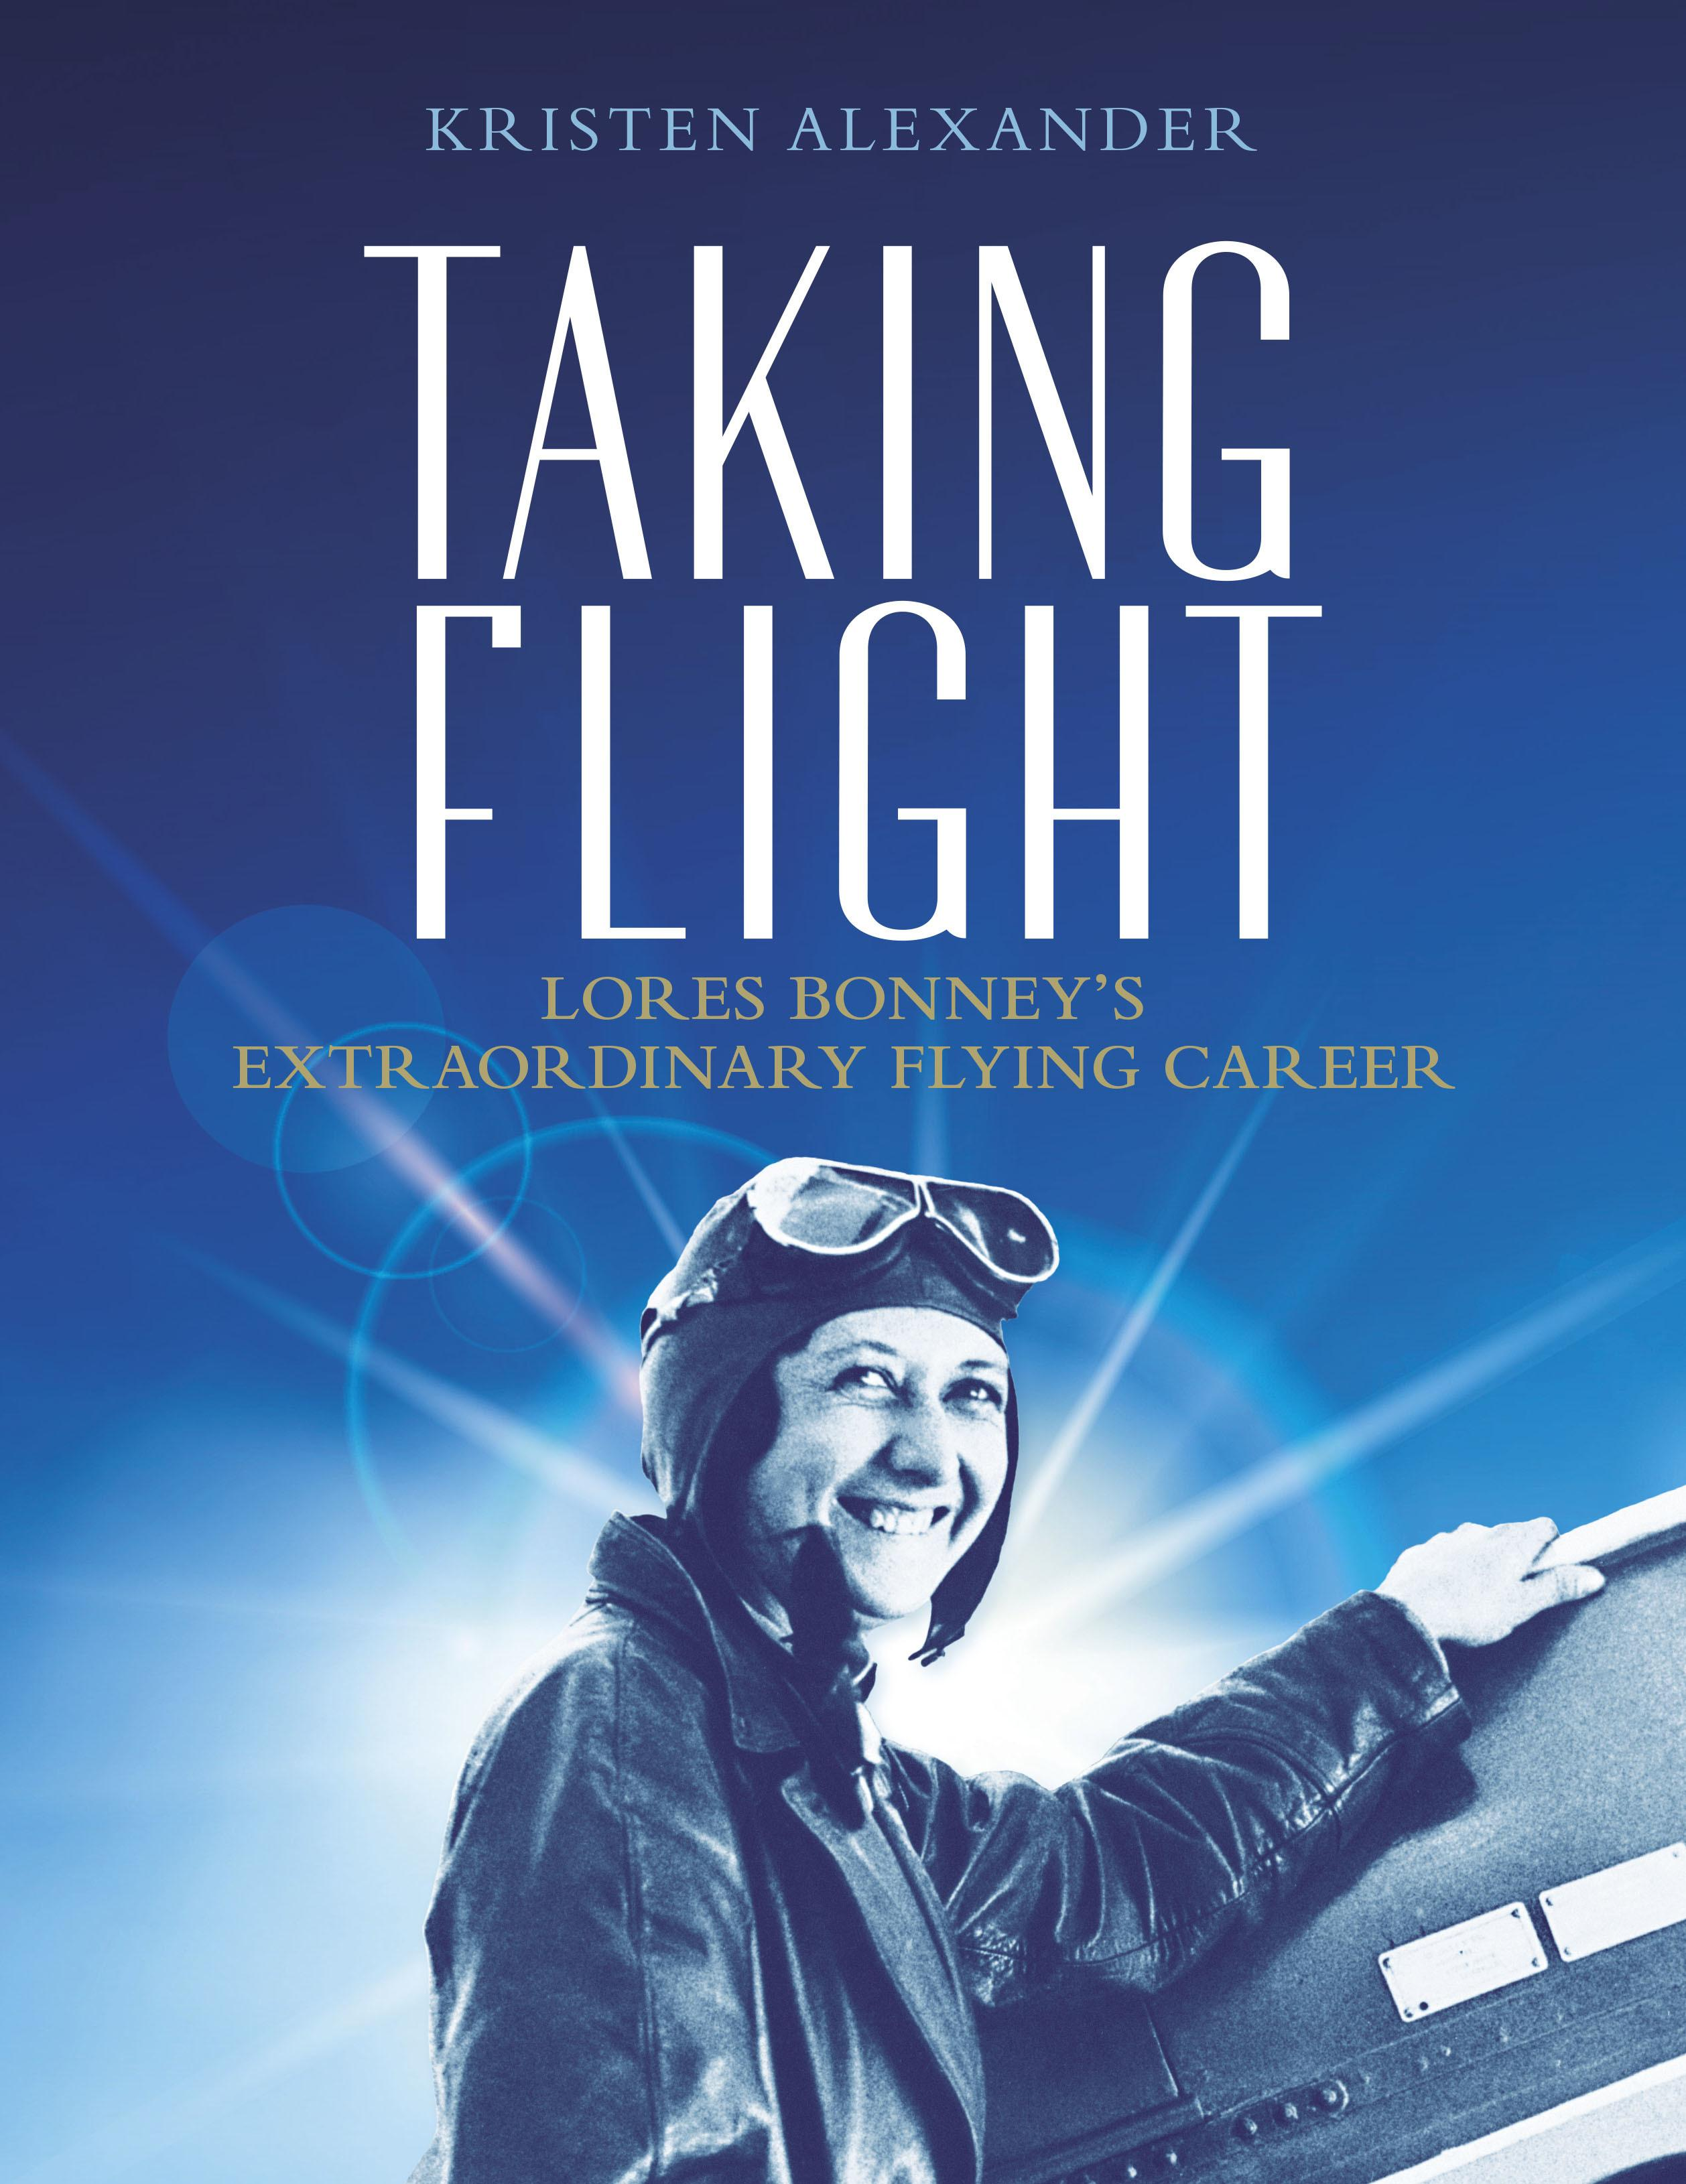 Taking Flight: Lores Bonney's Extraordinary Flying Career